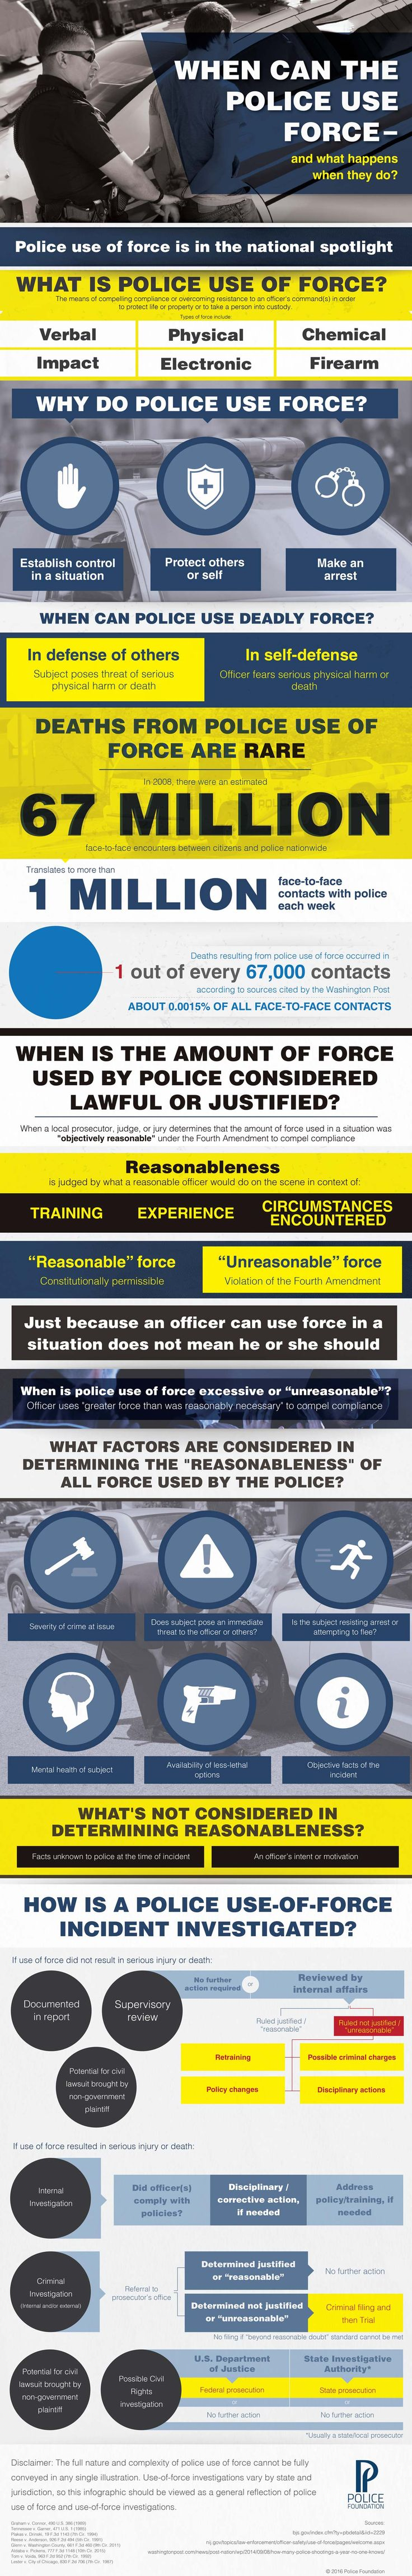 Using force can get the police in a lot of trouble if it's not warranted.  Learn when use of force is acceptable in the following infographic from The Police Foundation.